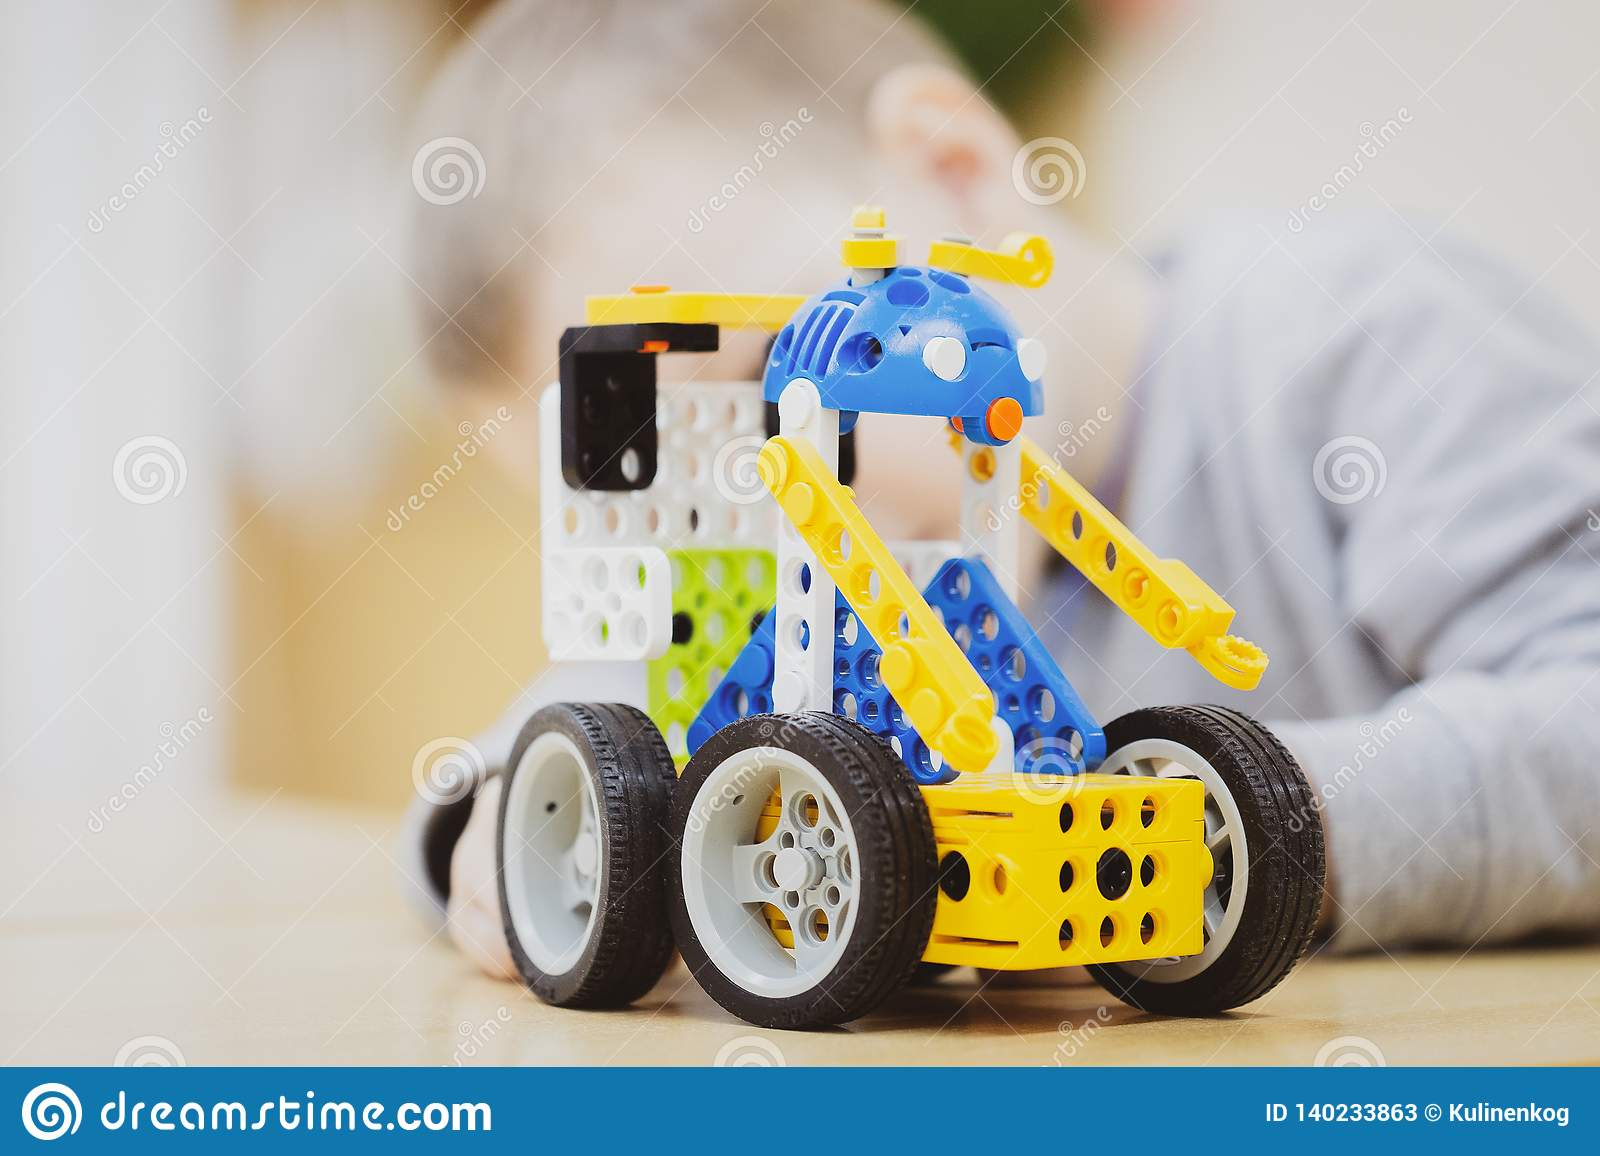 Big toy constructor machine is on the table as a gift to the boy